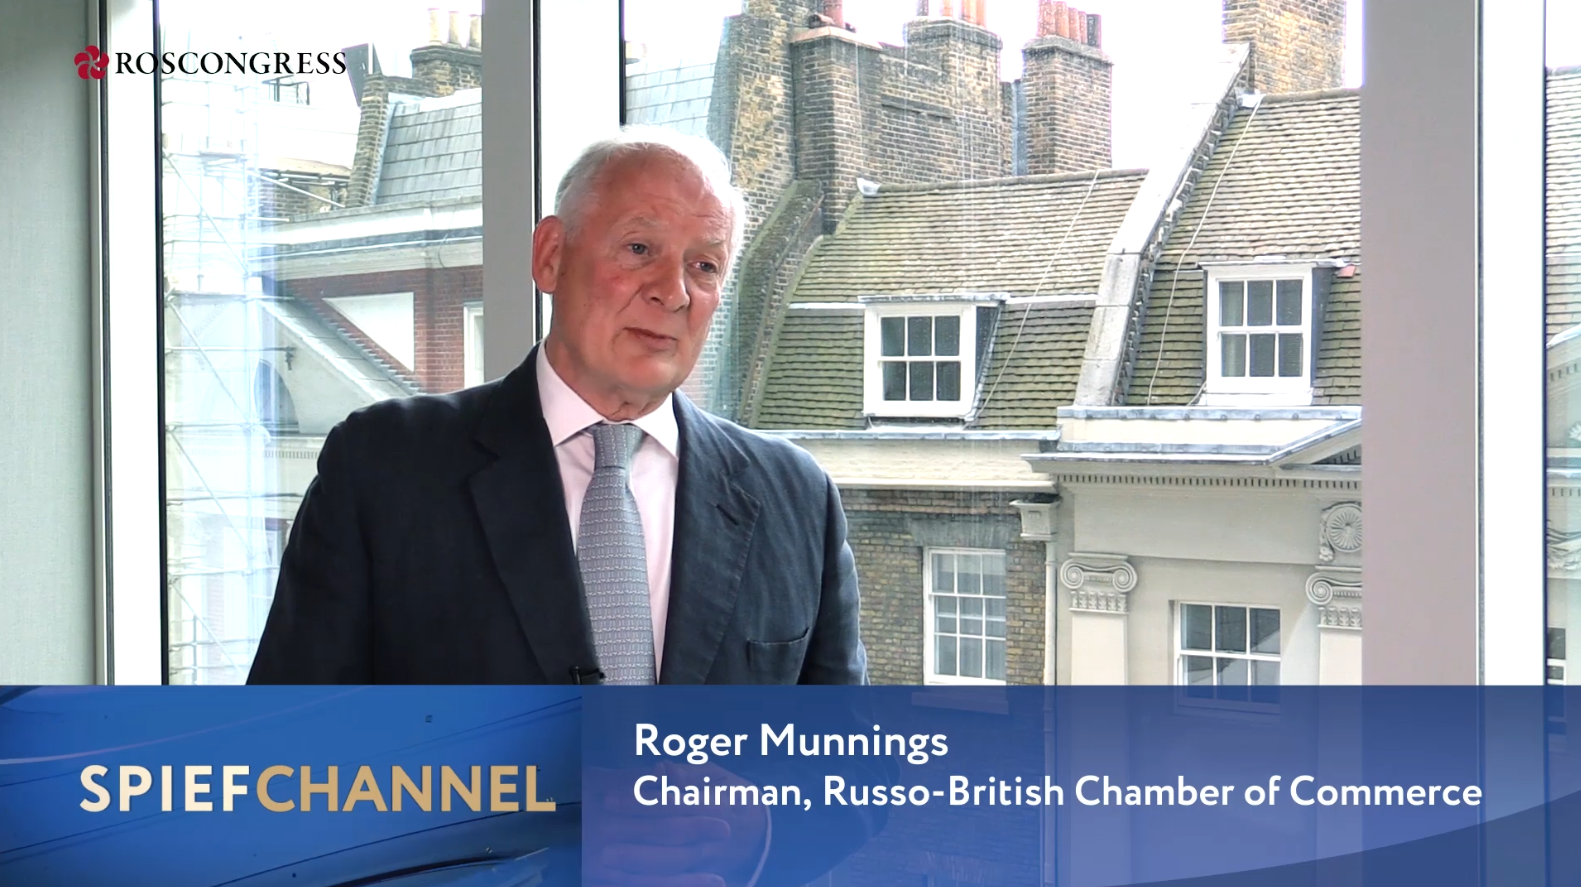 Roger Munnings, Chairman, Russo-British Chamber of Commerce